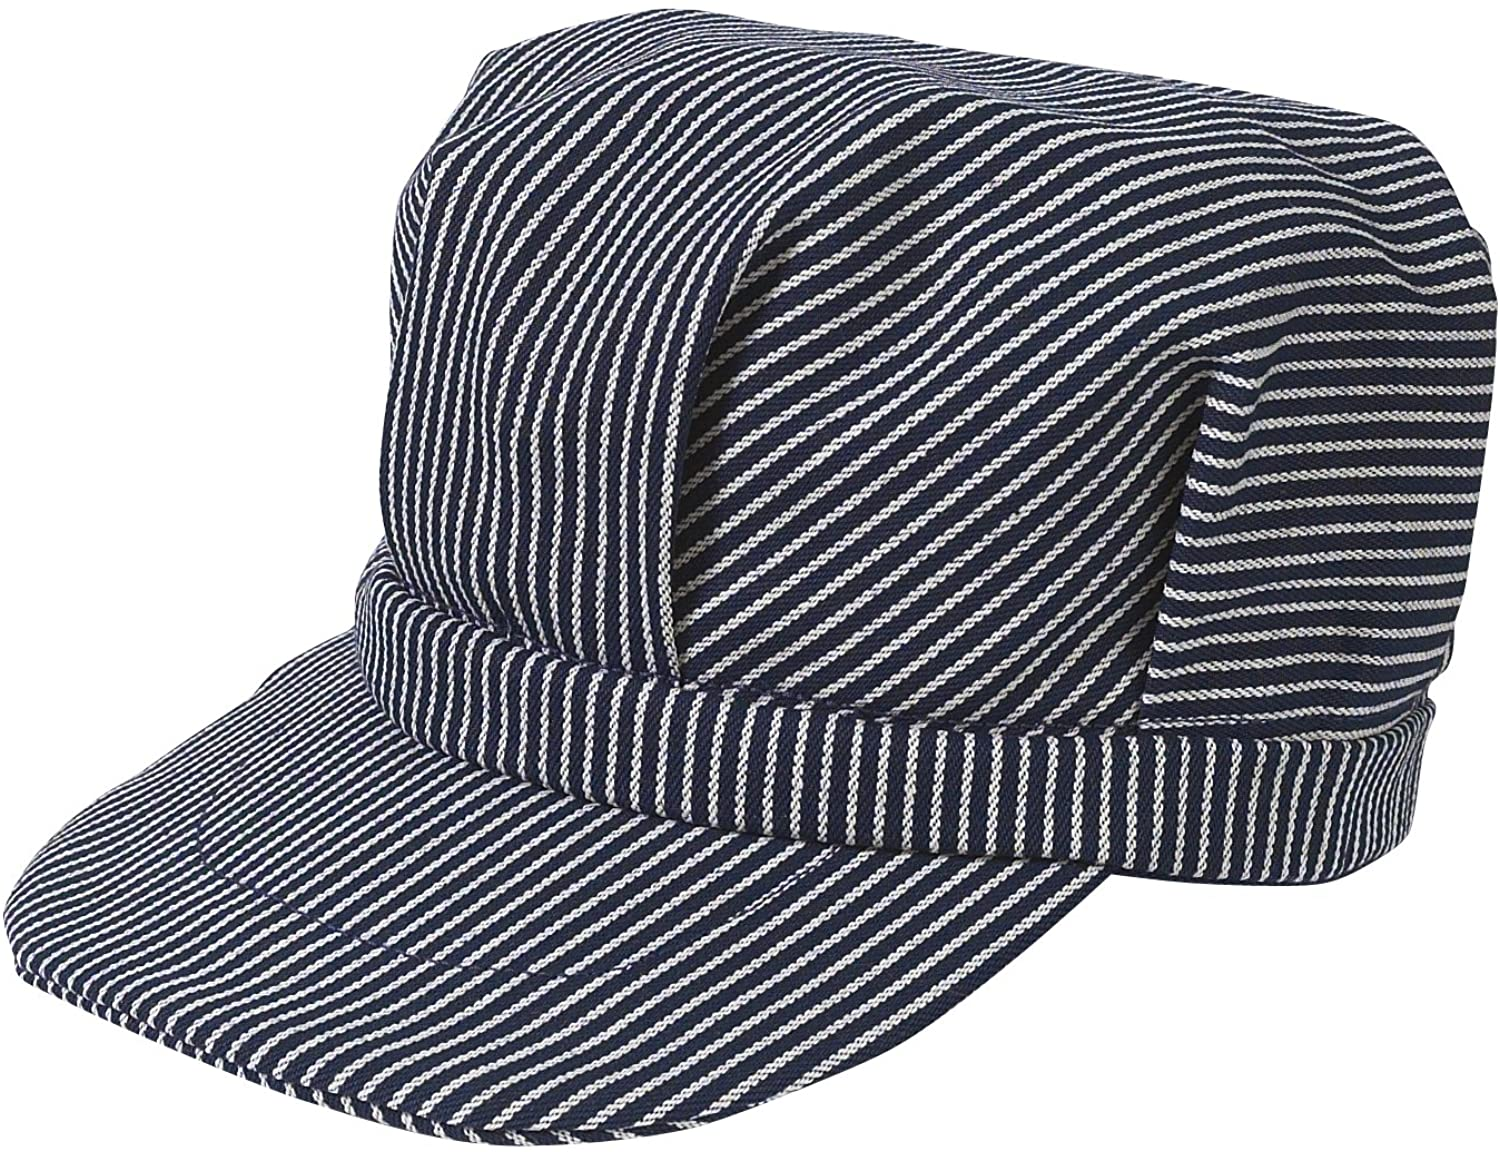 Men's Vintage Workwear Inspired Clothing Broner Sized Railroad Engineers Hat $19.99 AT vintagedancer.com